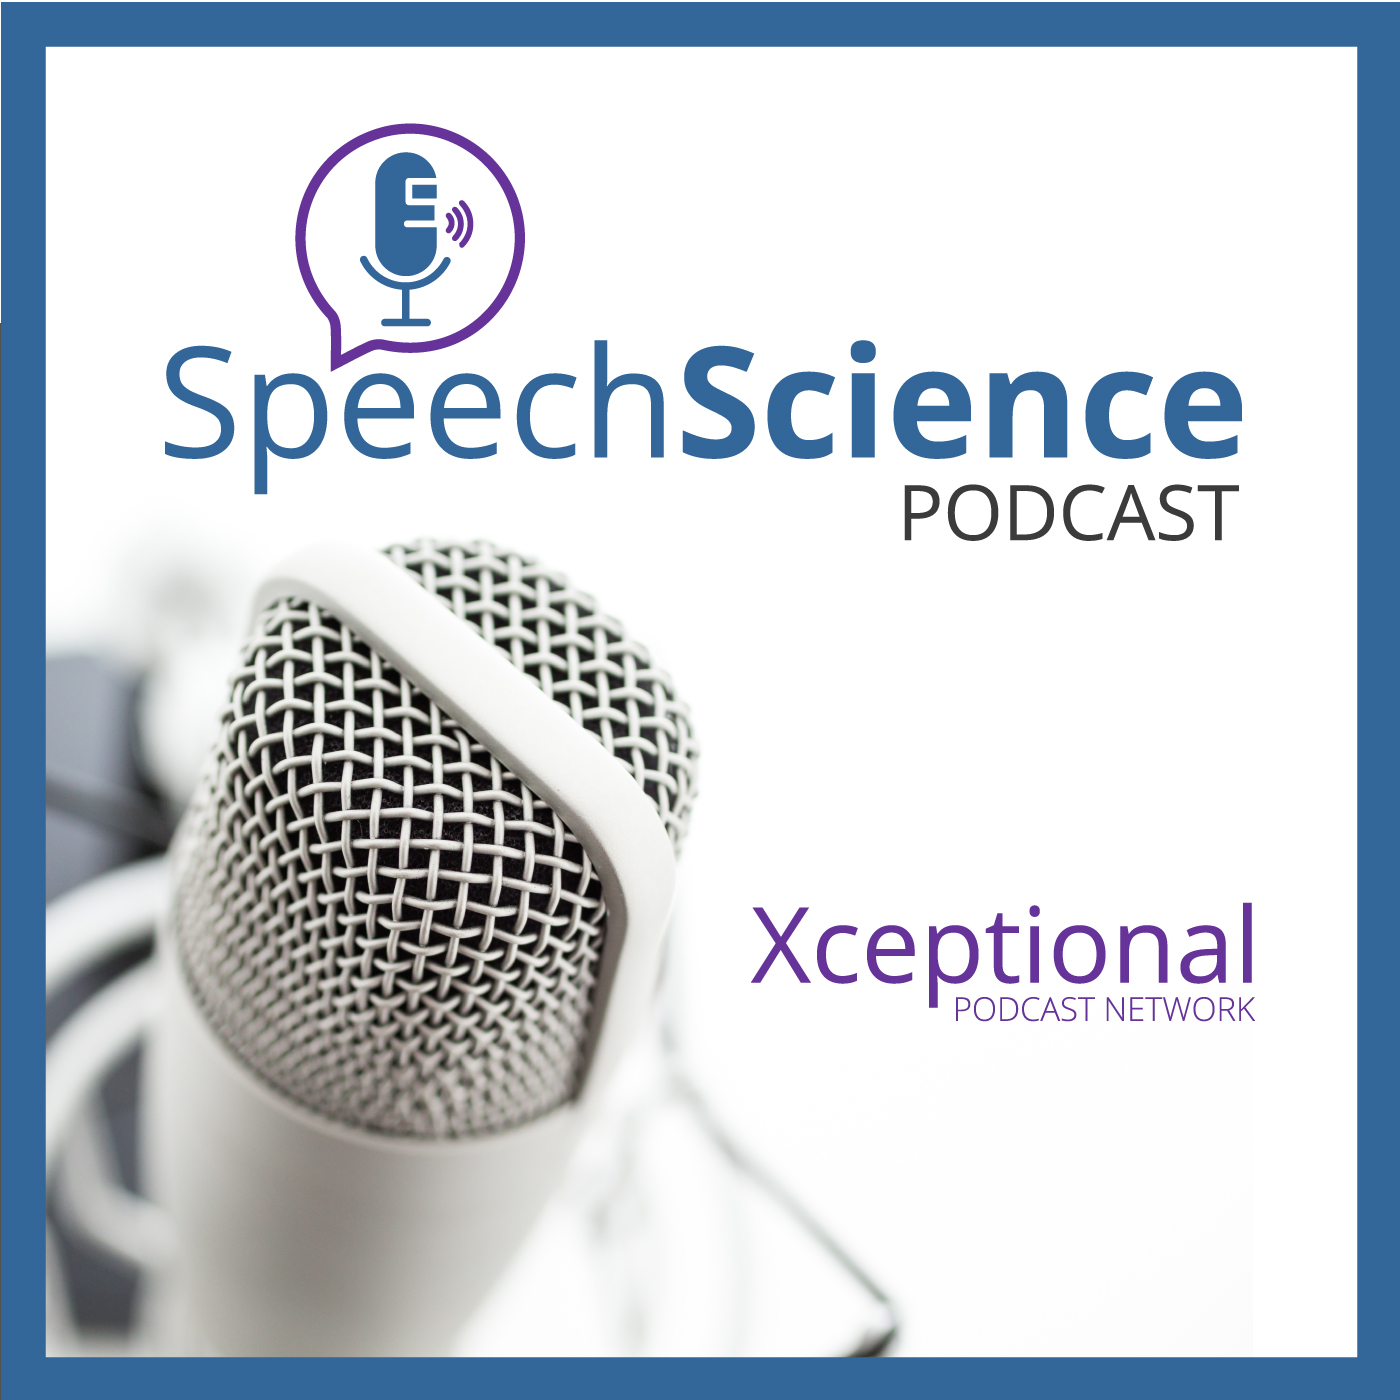 SpeechScience Podcast Brand Design